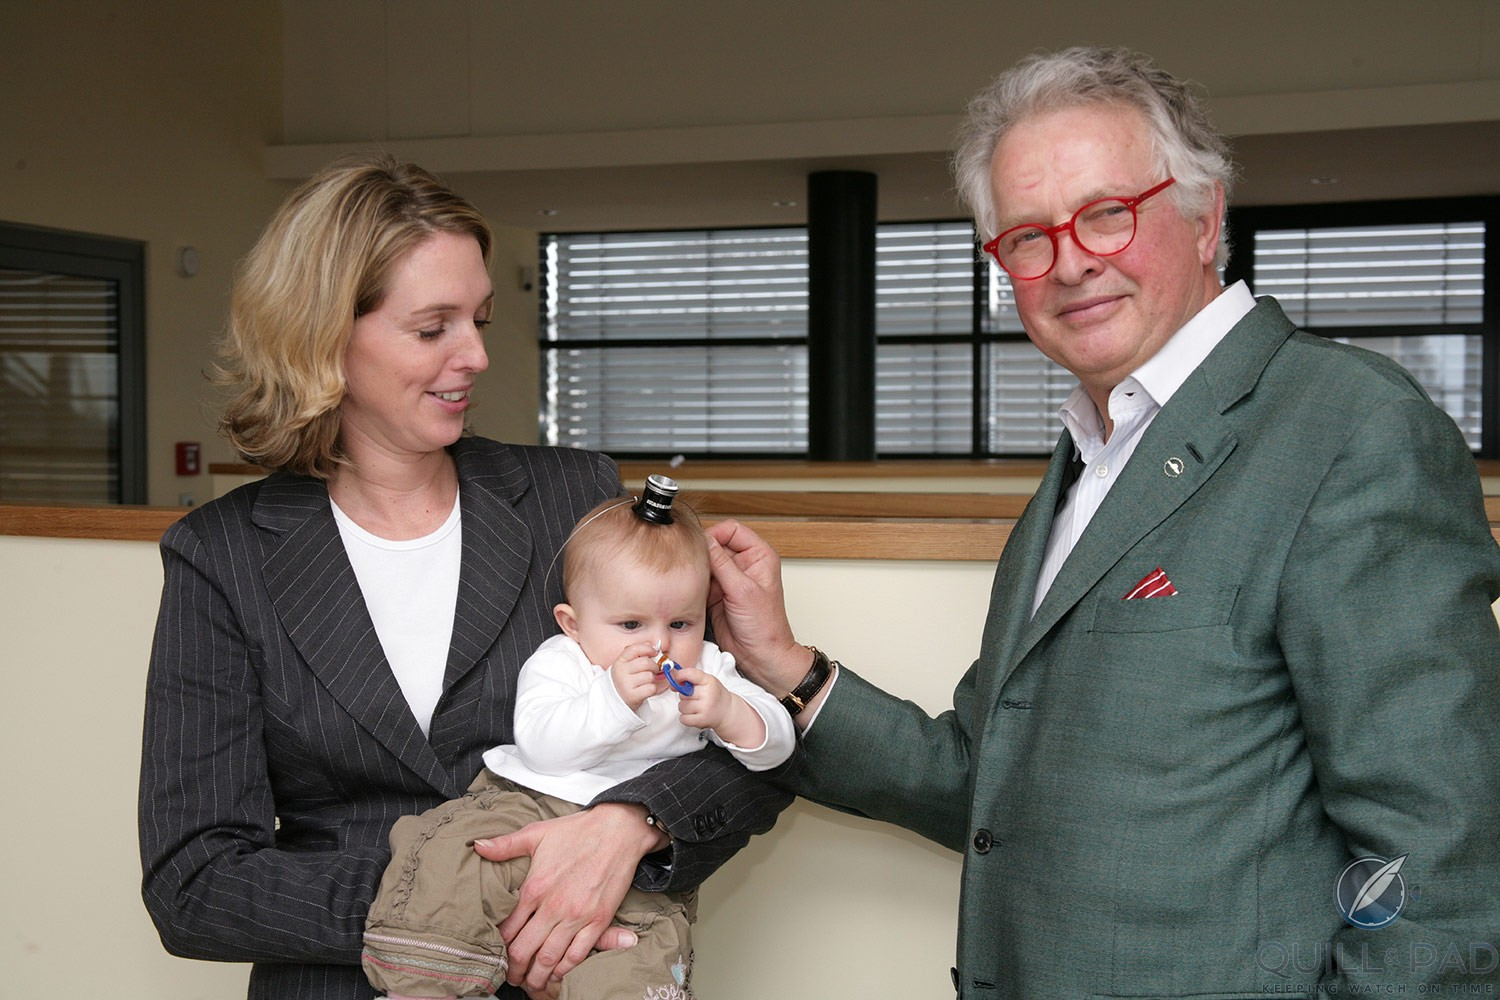 Gerd-Rüdiger Lang with daughter Natalie and grandchild